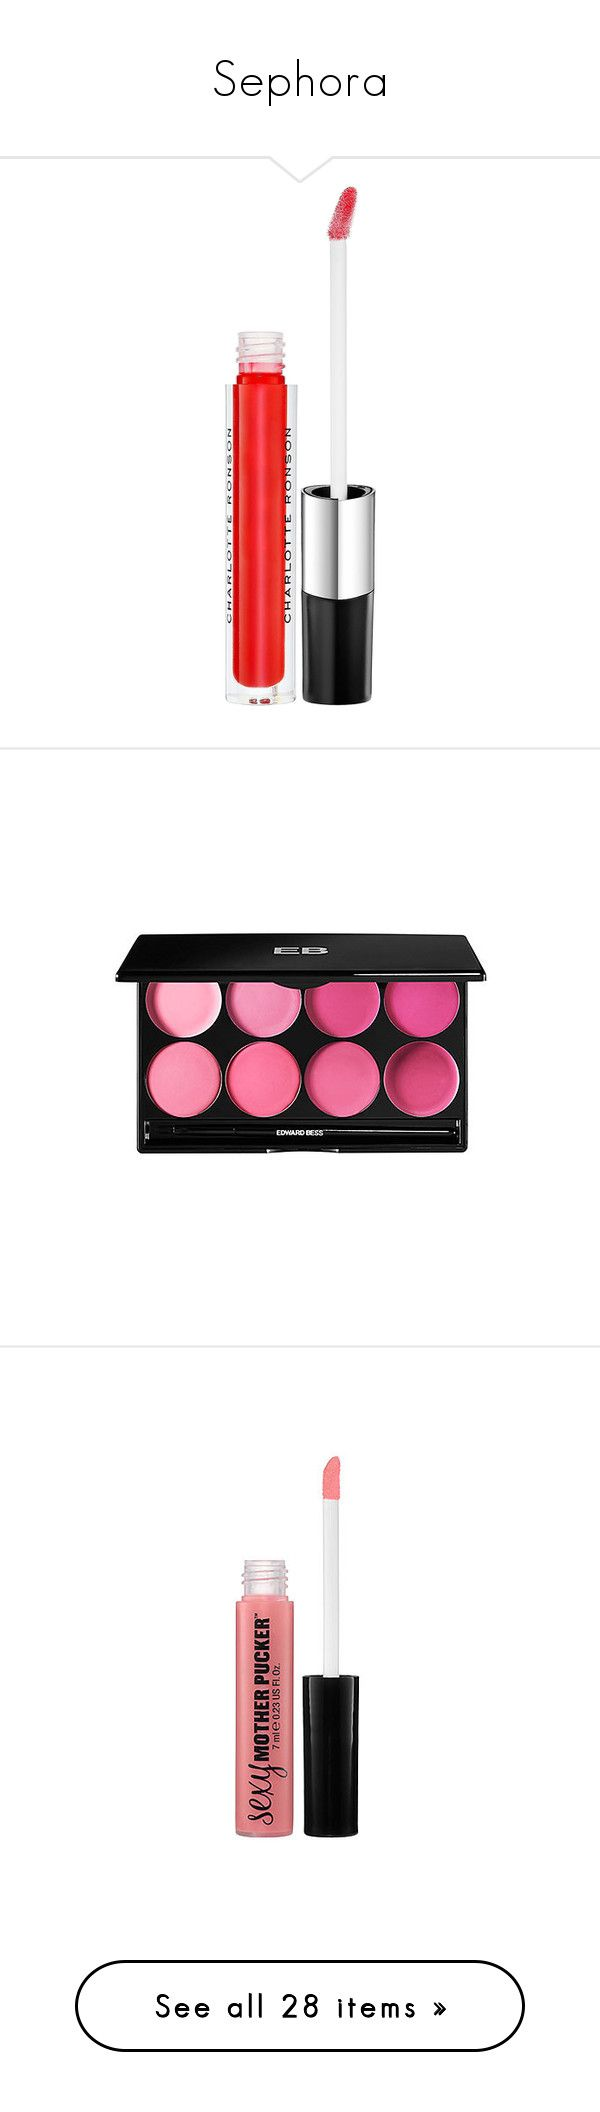 """Sephora"" by brittneysaysrawrrr ❤ liked on Polyvore featuring beauty products, makeup, lip makeup, lip gloss, beauty, lips, maquiagem, flavored lip gloss, lip shine and charlotte ronson"